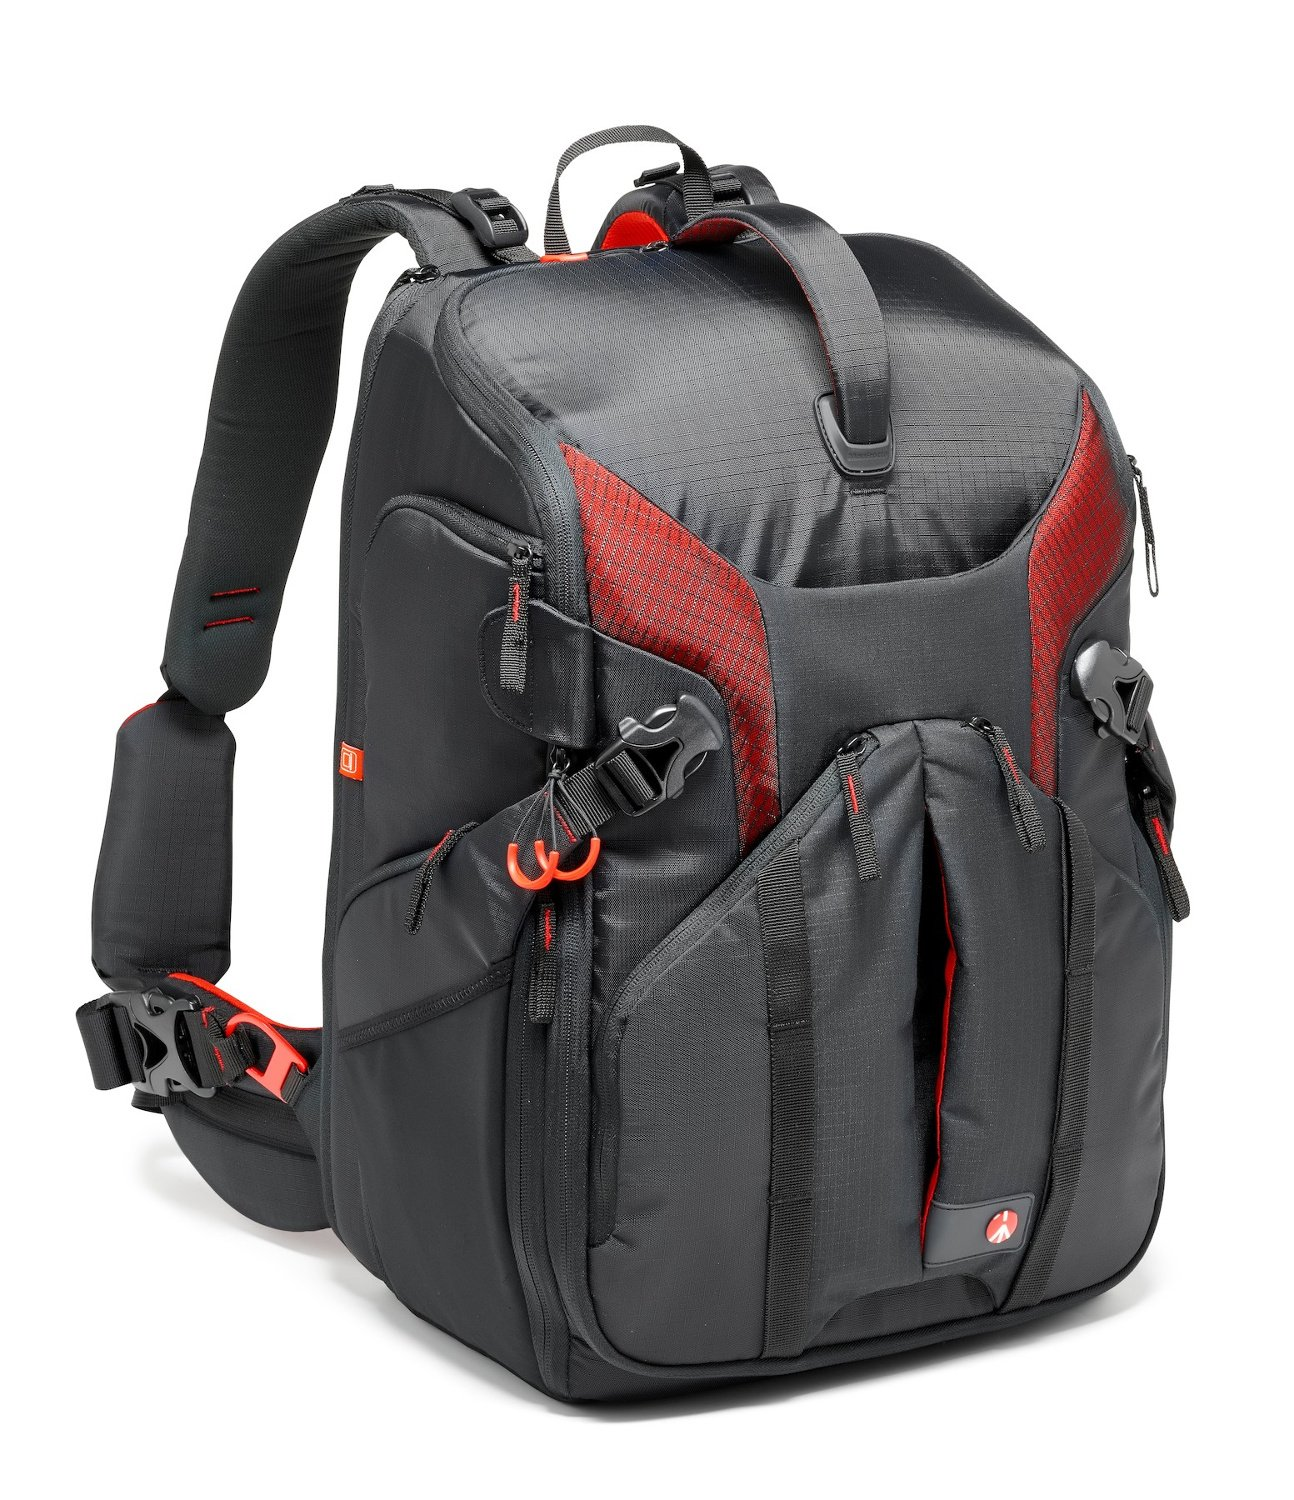 Professional Camera Backpack for DSLRs, Canon C100, or DJI Phantom Drone